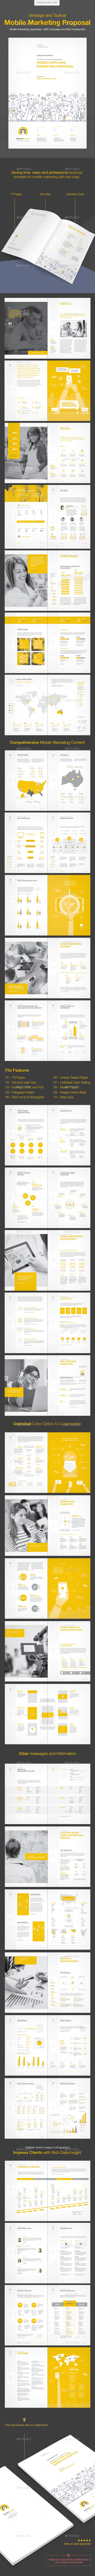 Clean Mobile Marketing Proposal Template InDesign INDD. Download here: http://graphicriver.net/item/clean-mobile-marketing-proposal/15527049?ref=ksioks